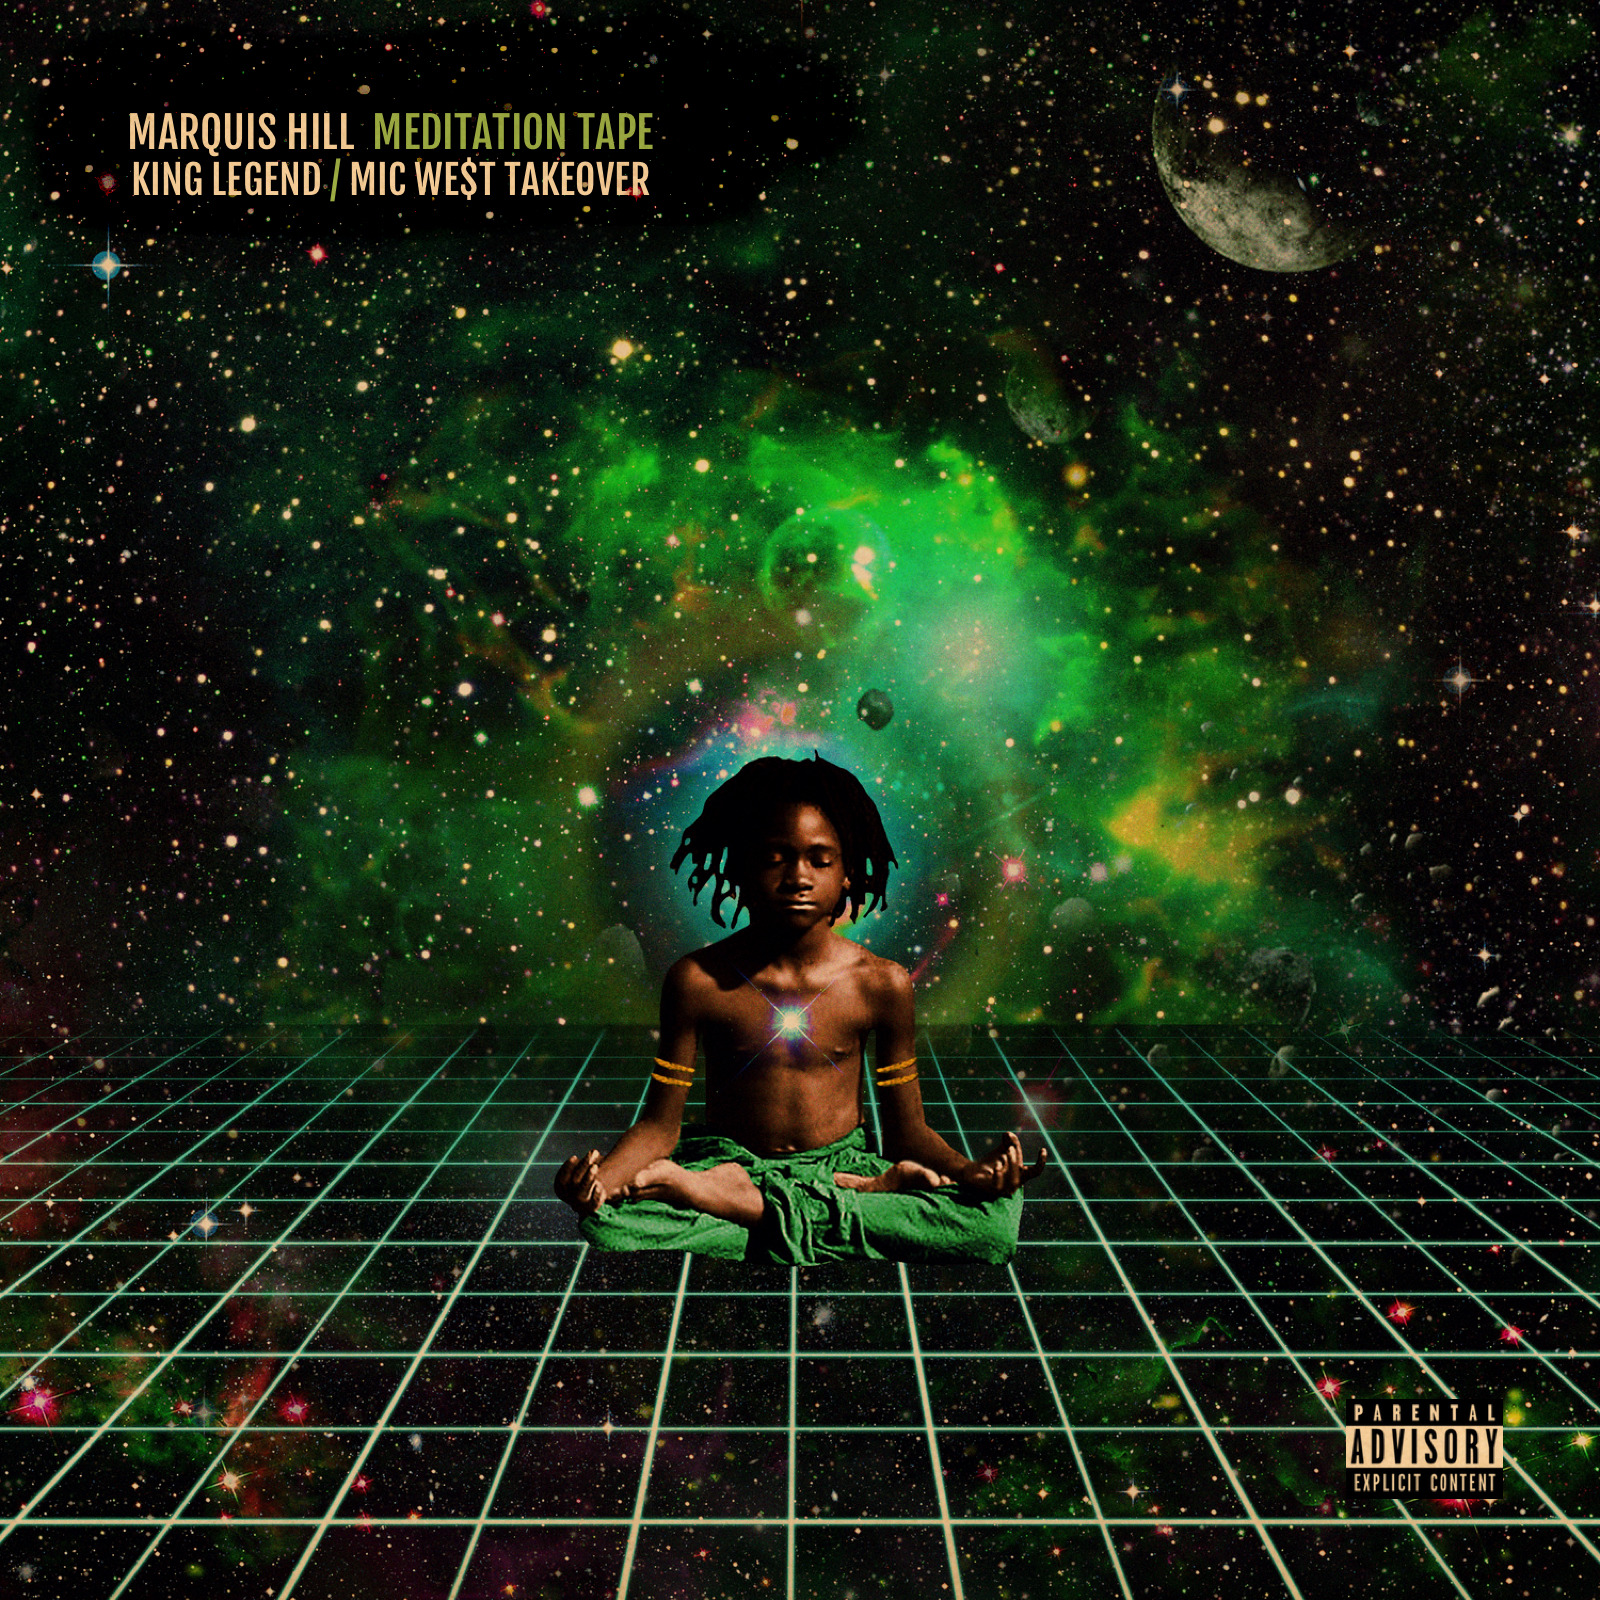 MEDITATION TAPE (KING LEGEND/MIC WEST TAKEOVER) -